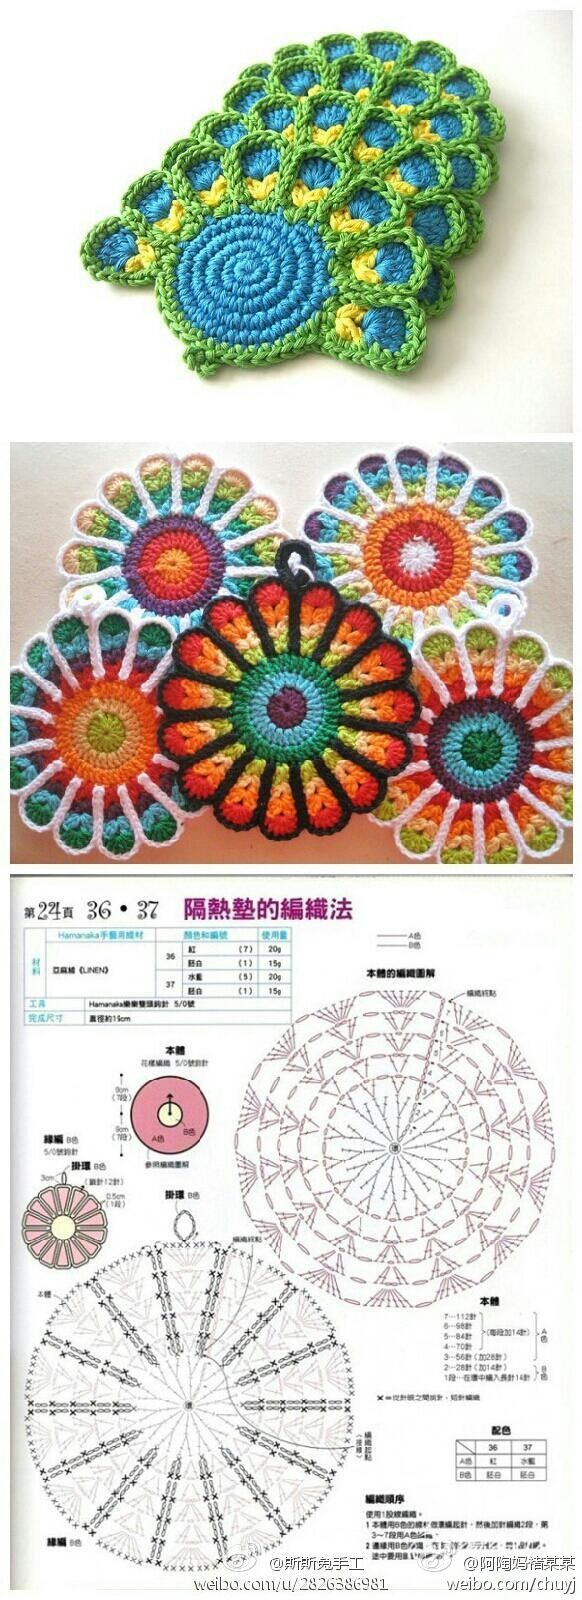 Crocheted flowers with diagram.